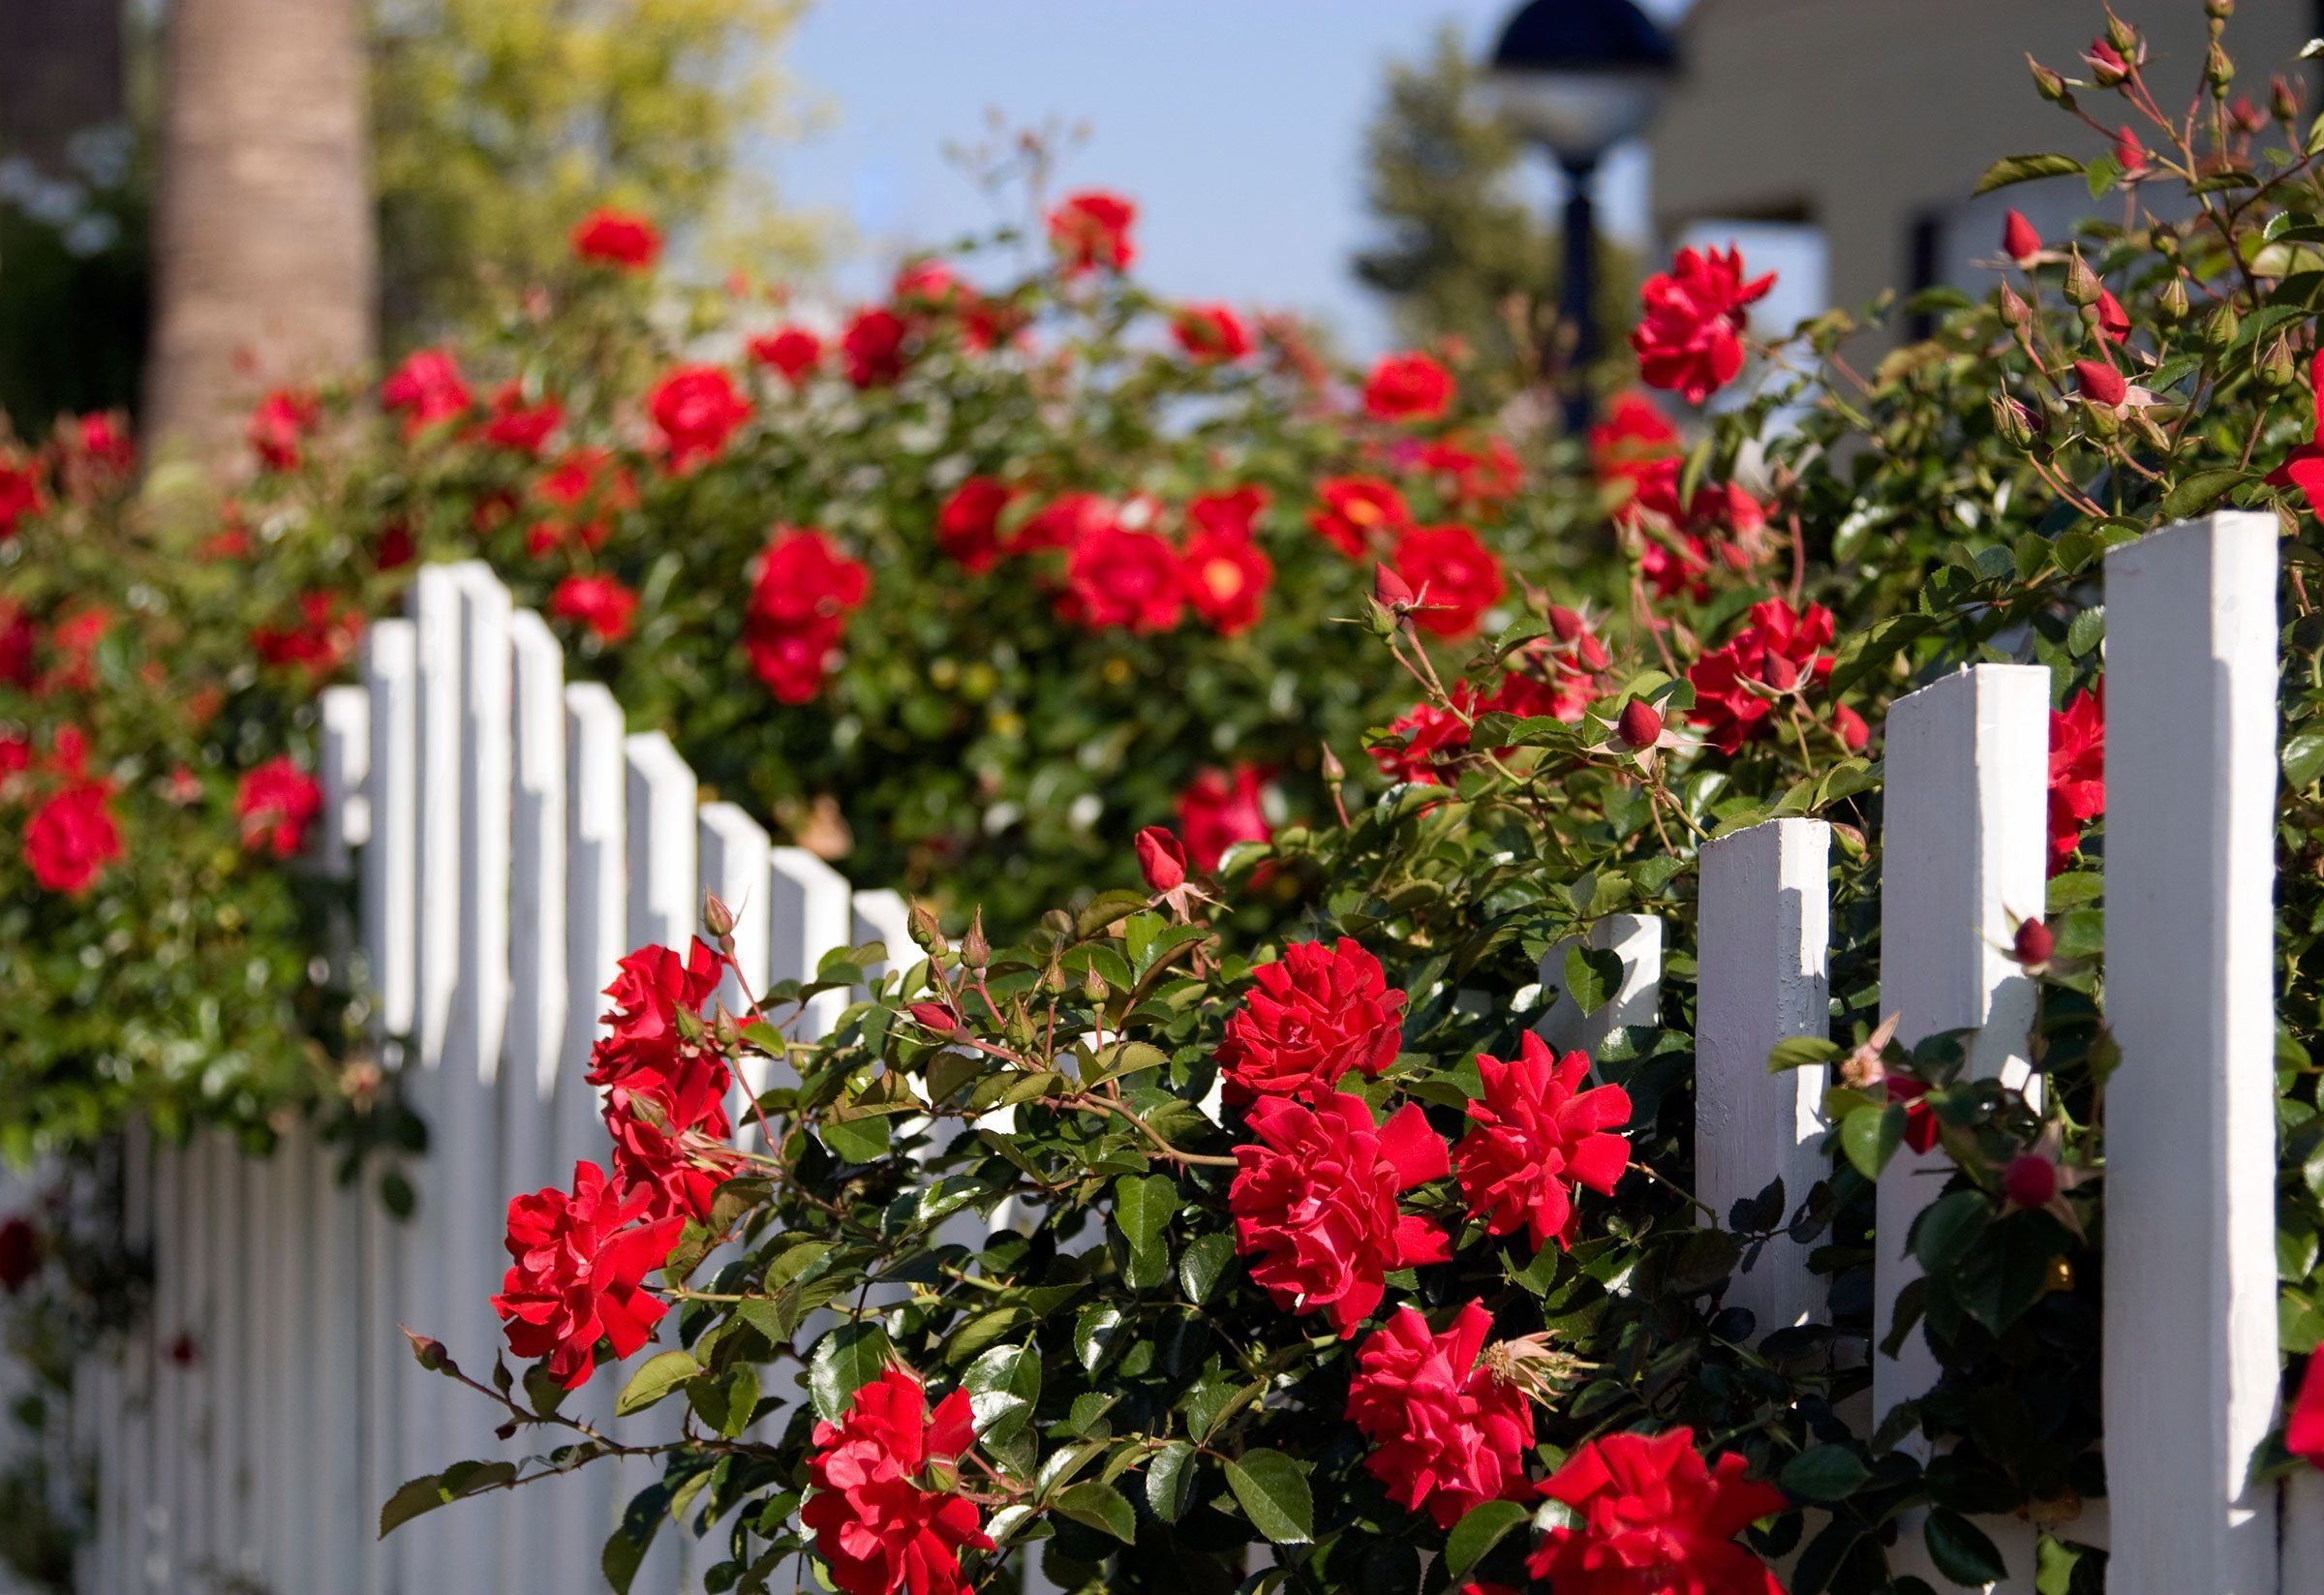 5. Plant thorny shrubs, such as rosebushes, beneath ground-floor windows.